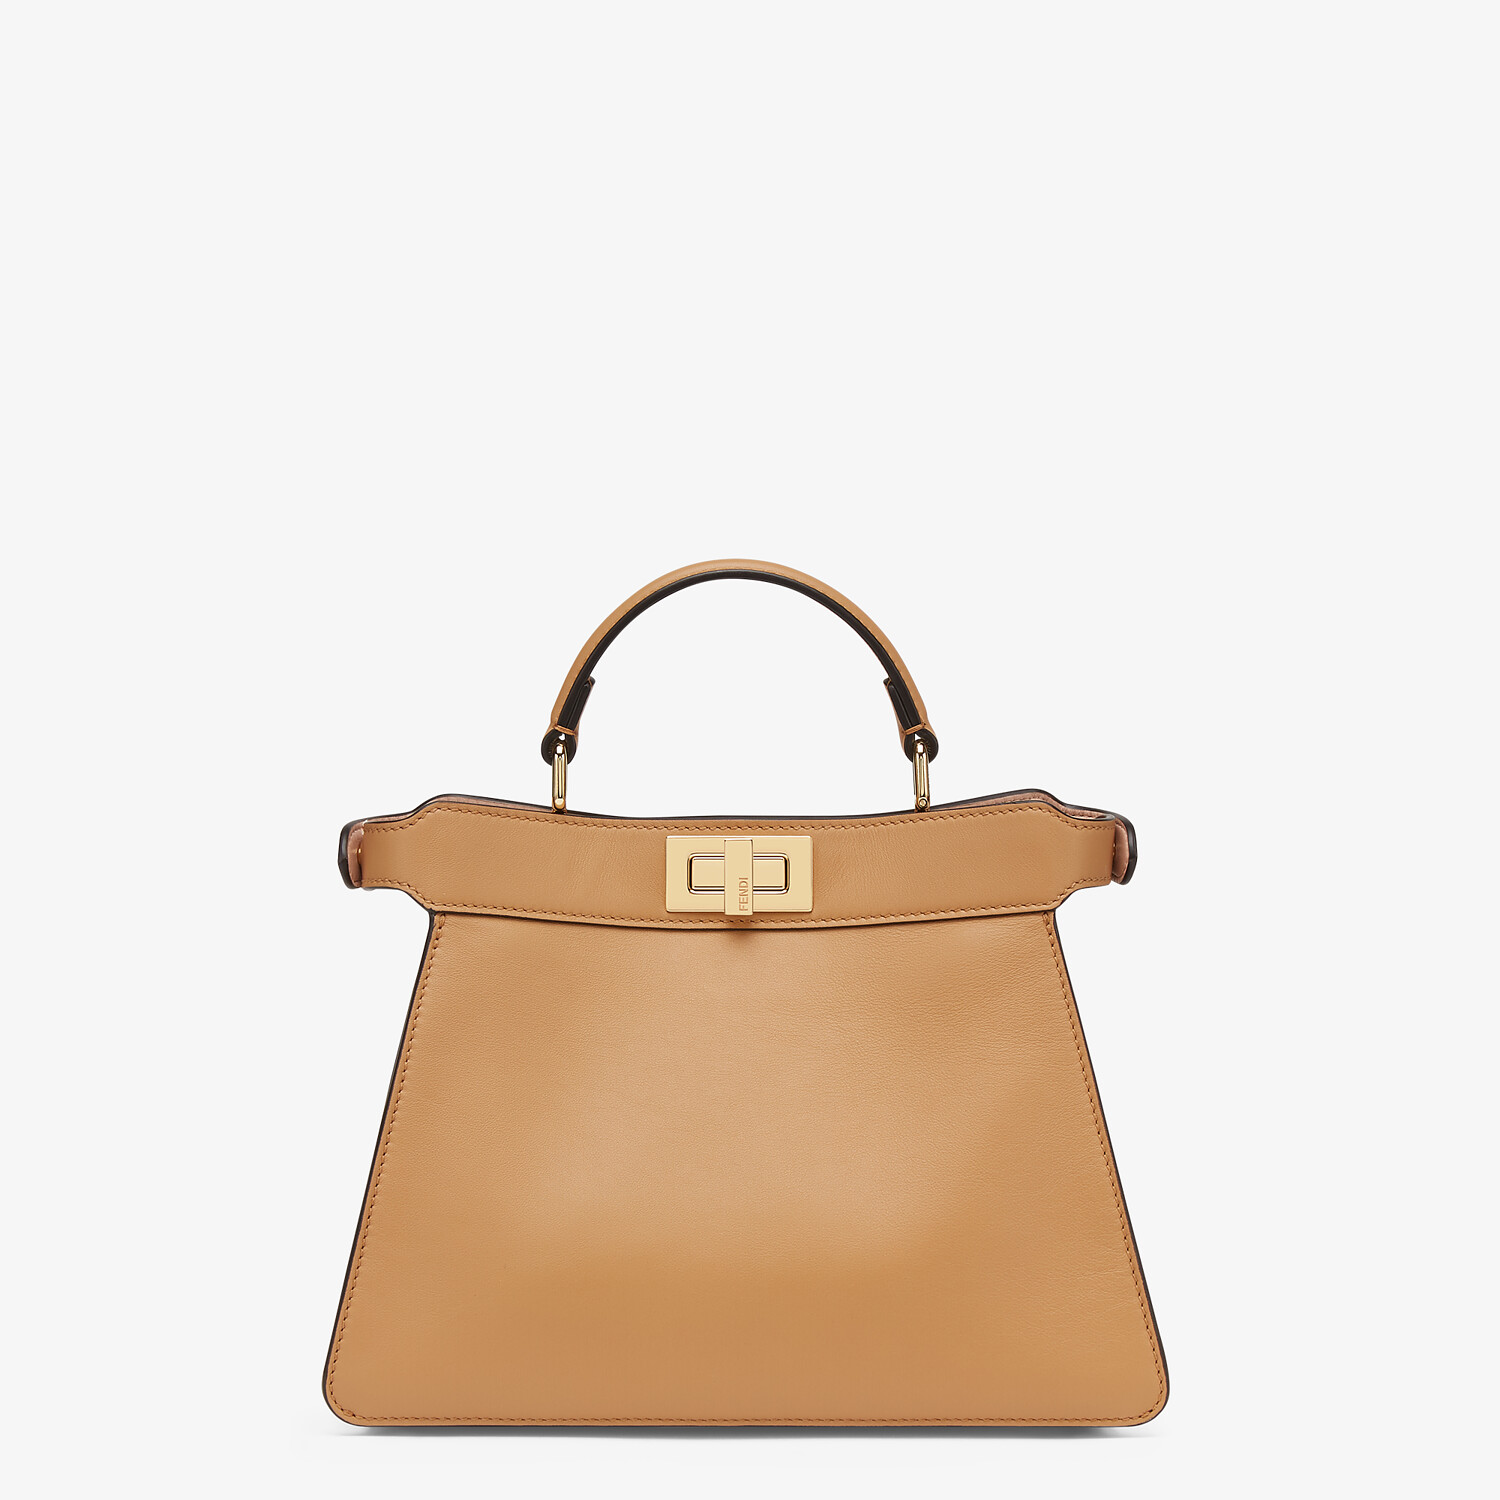 FENDI PEEKABOO ISEEU SMALL - Beige leather bag - view 4 detail